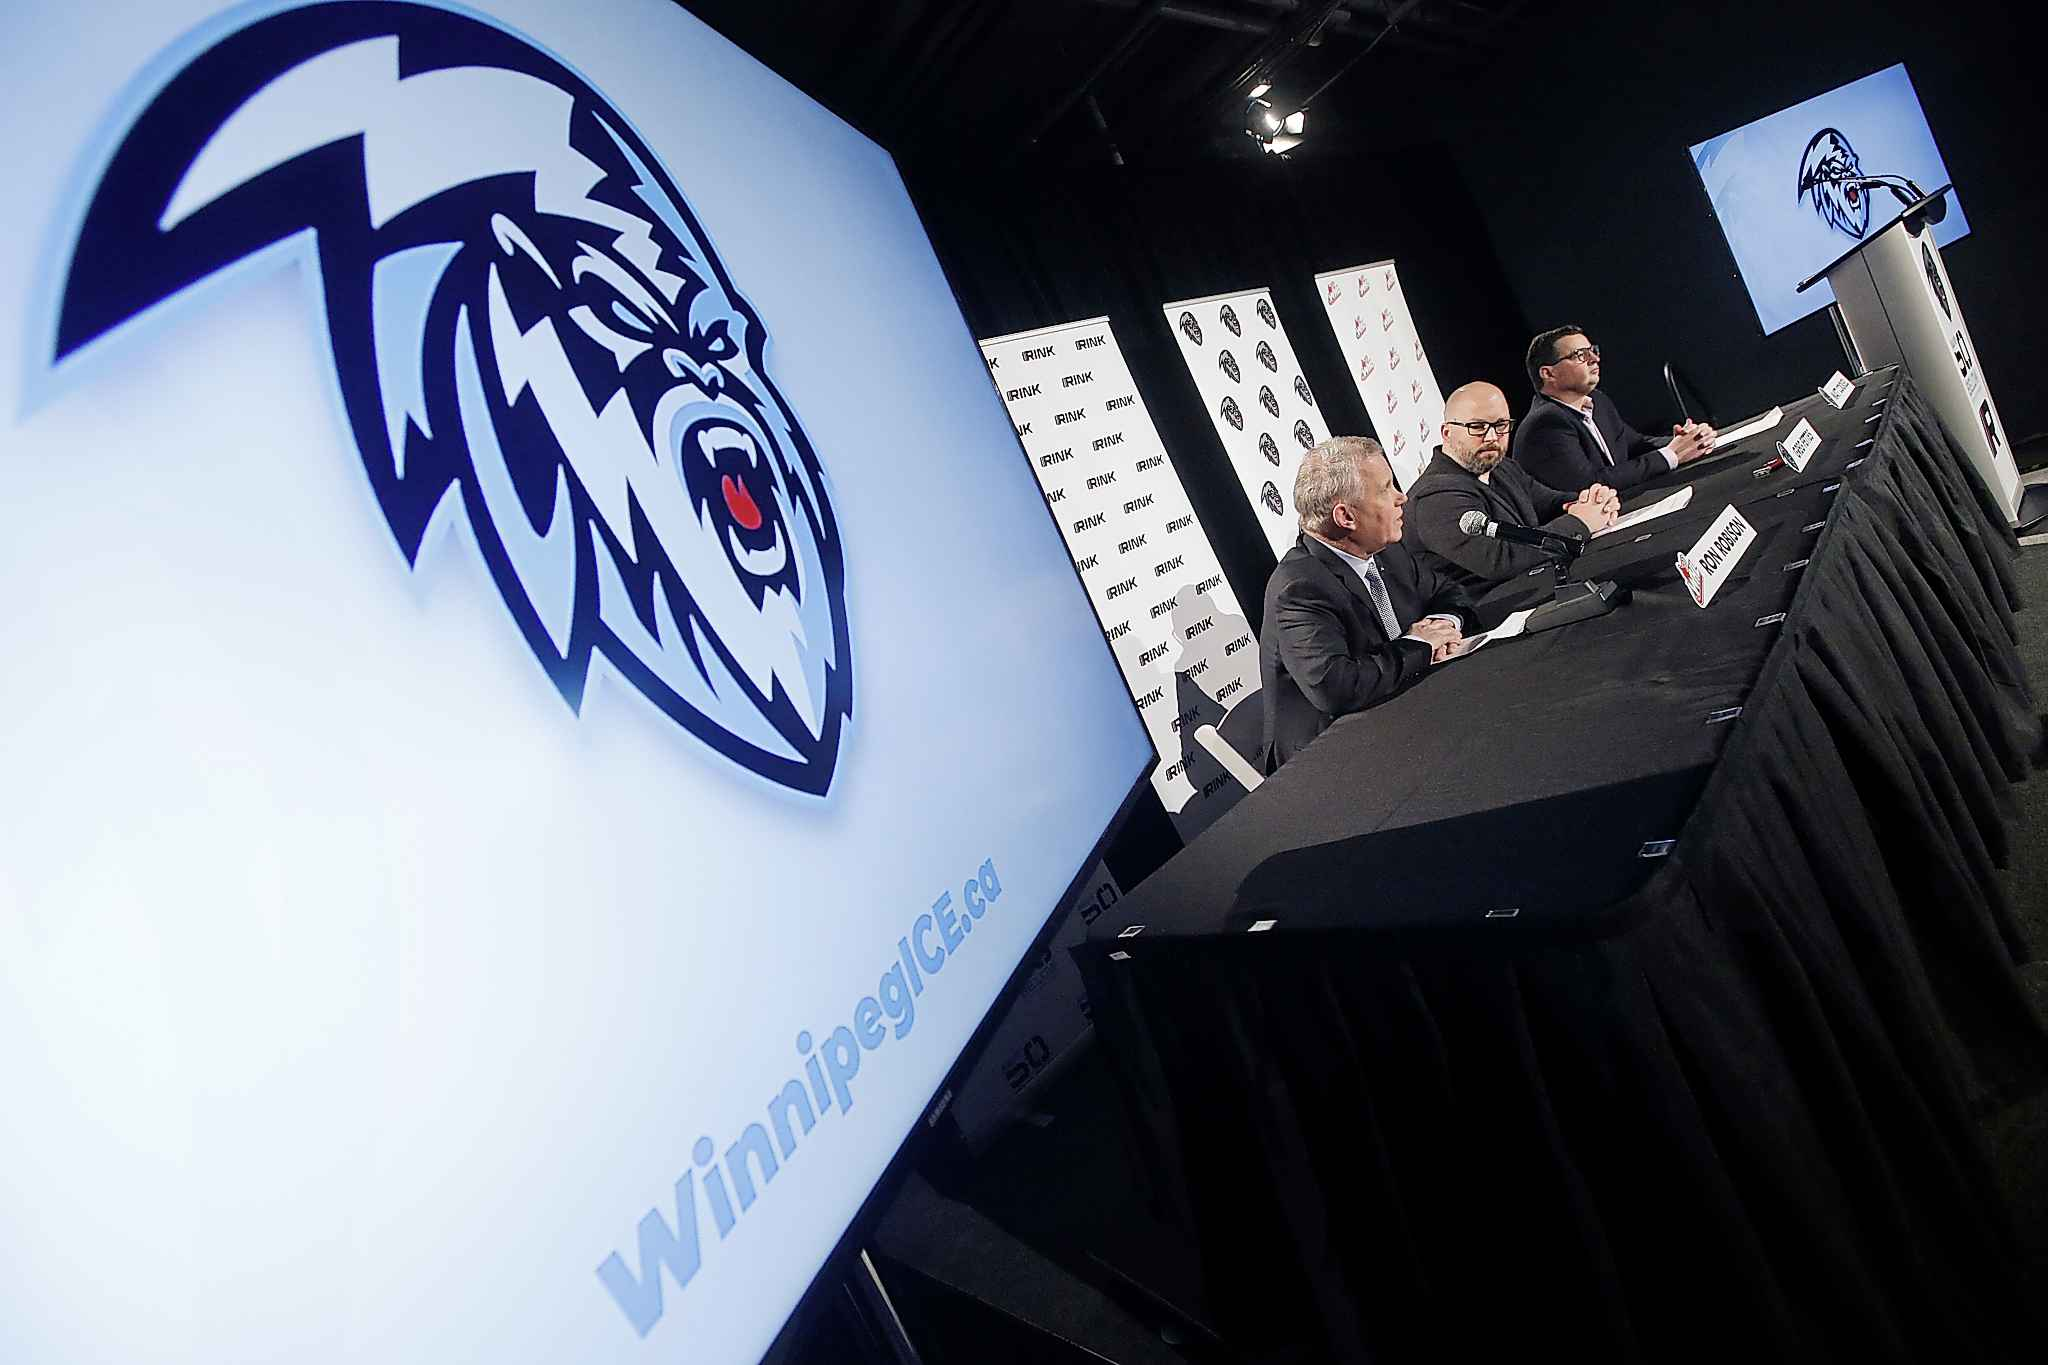 Winnipeg ICE President and General Manager Matt Cockell, far right, gambled on his ability to sell his city and program to Matt Savoie after he announced his commitment to the University of Denver of the NCAA.